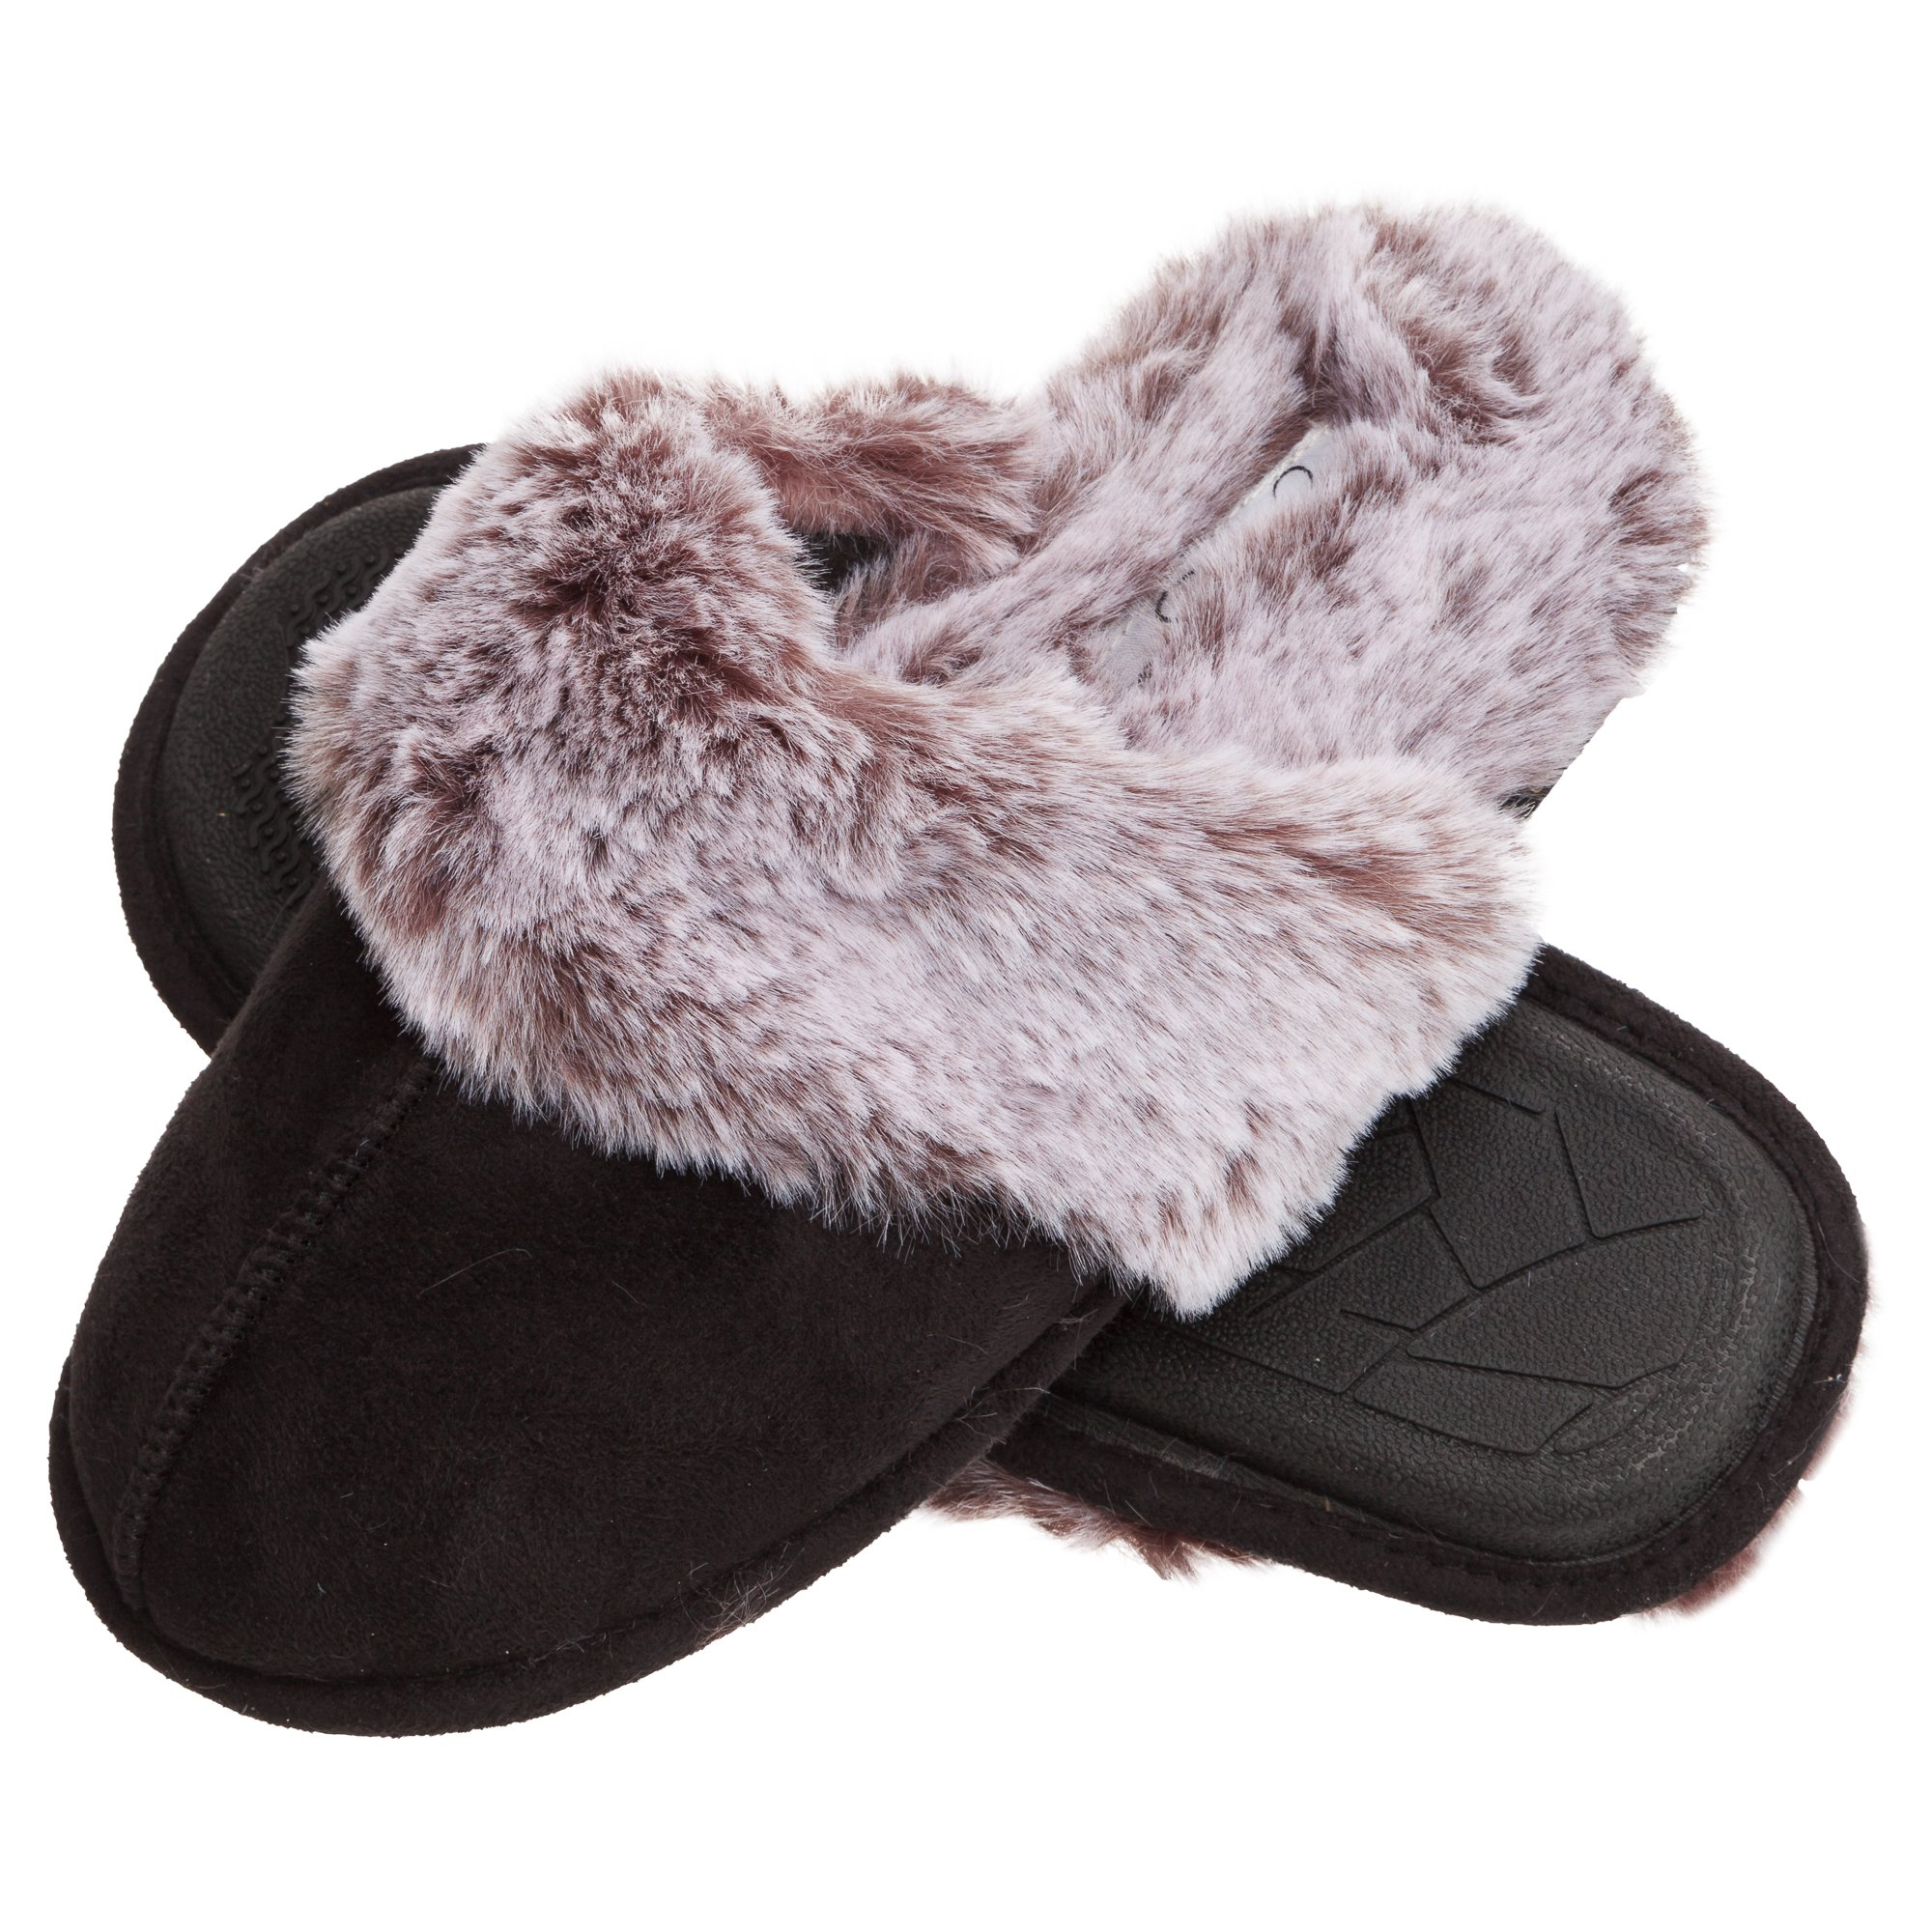 Jessica Simpson Faux Fur Slip On Womens House Slipper Memory Foam (Size Large, Black)